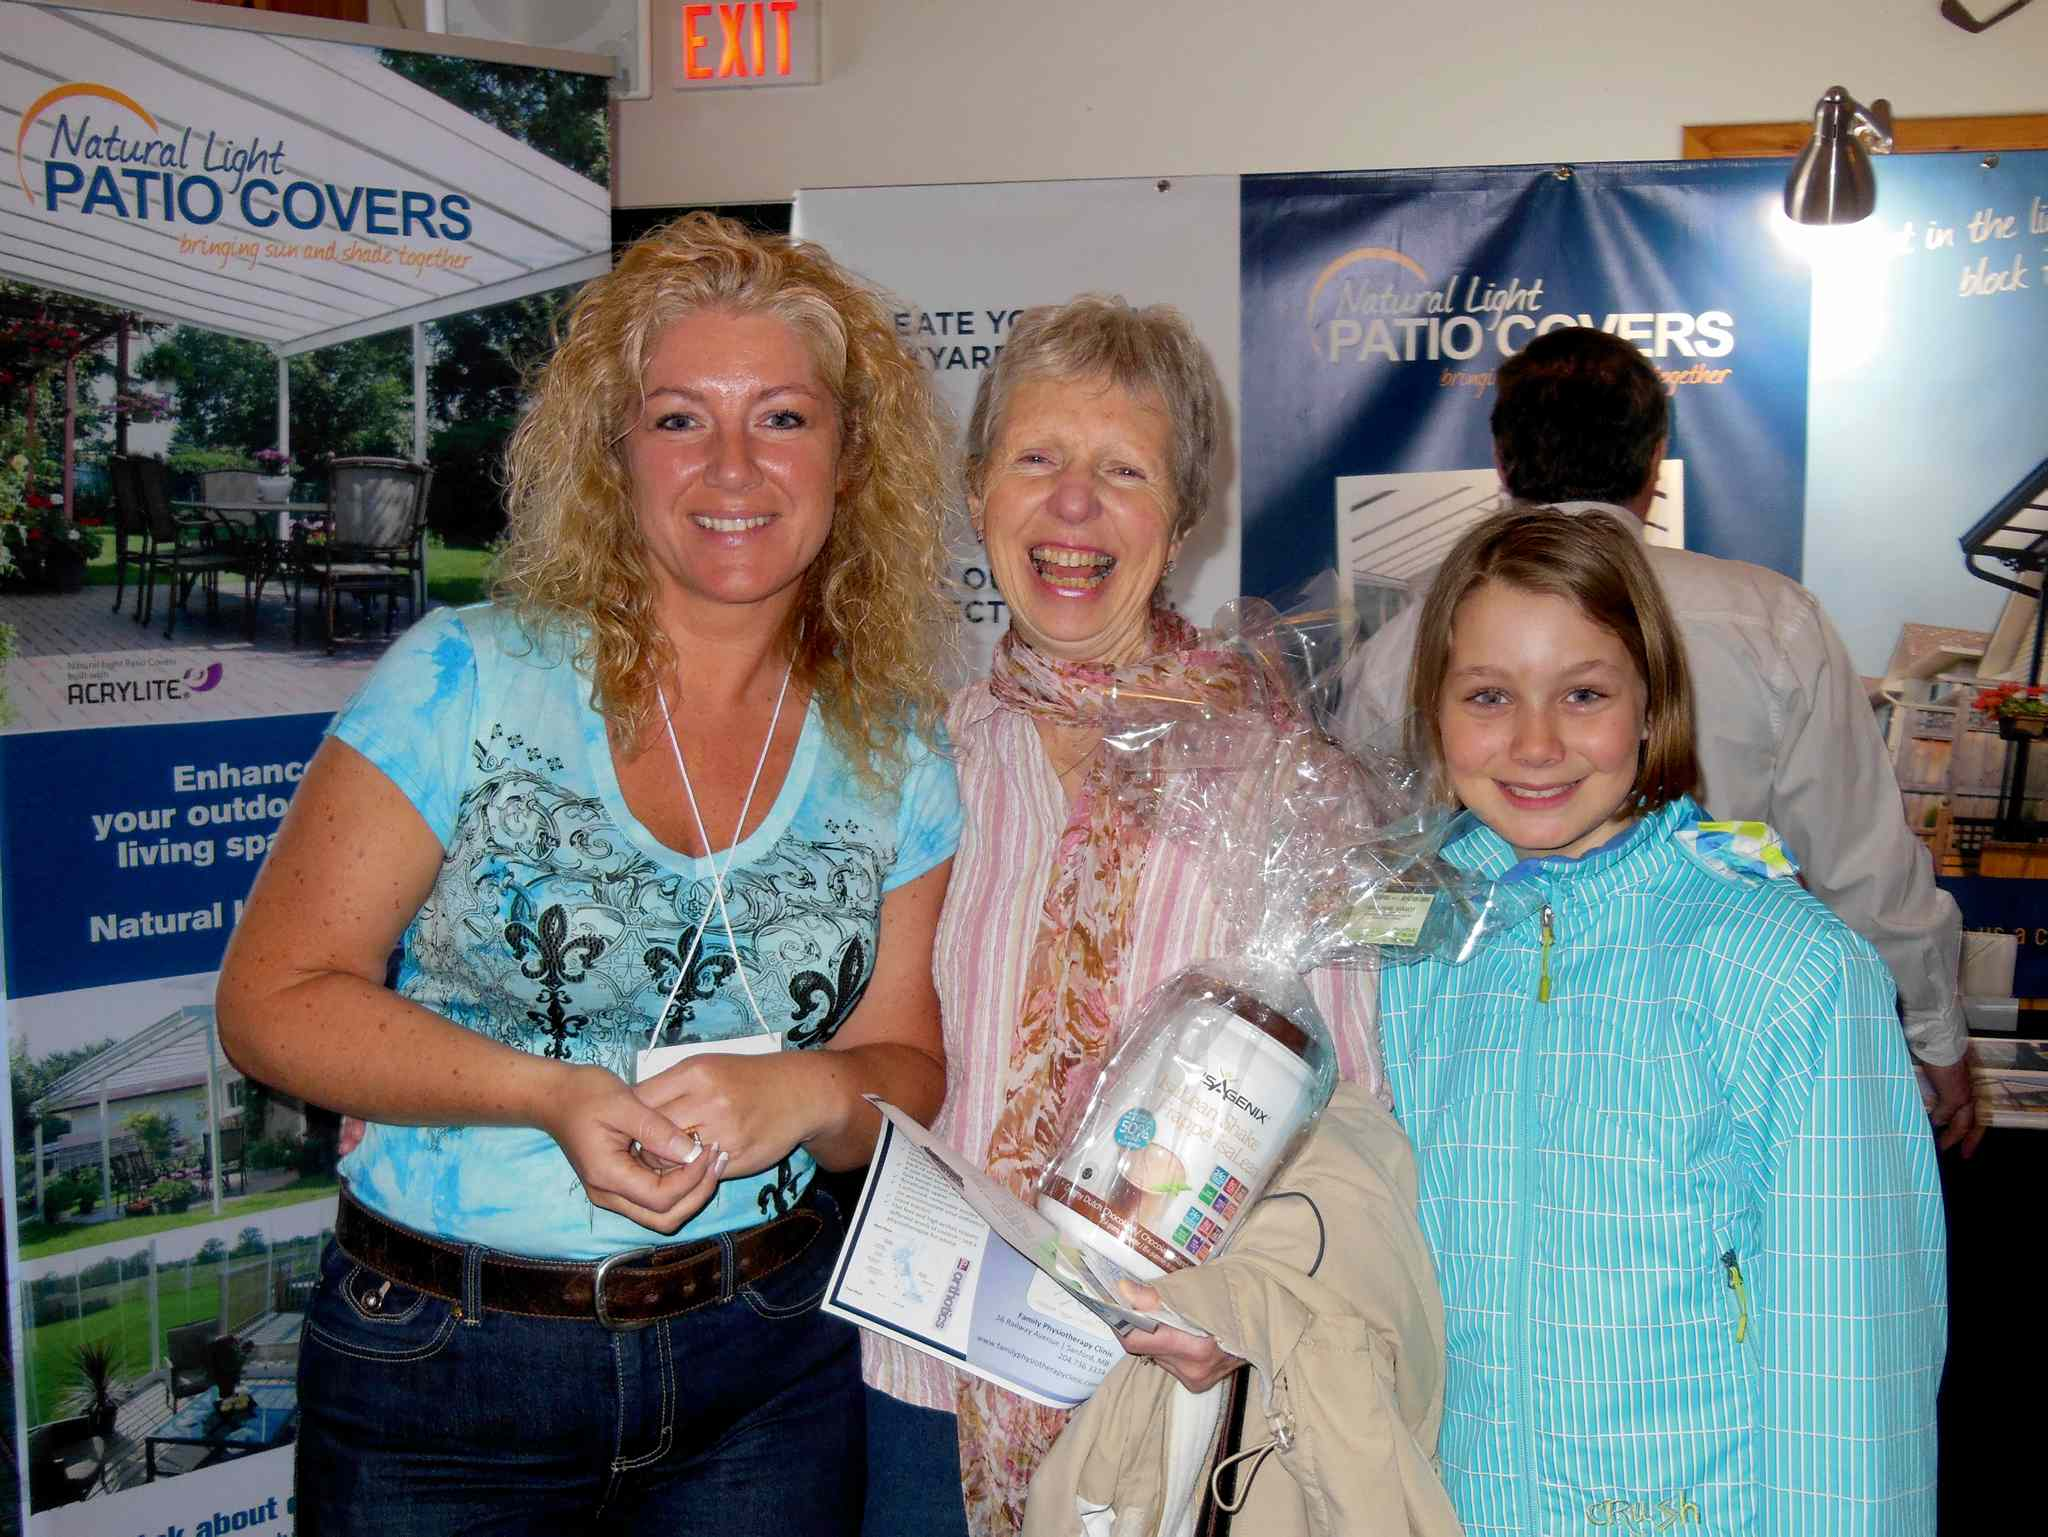 Maxene Pelletier of Isagenix (left) presented Elaine Magarrell (centre) with a door prize at the 2013 La Salle and Area Chamber of Commerce Home & Life Show. This year's show is being held on May 3 in the new LSCU Complex.